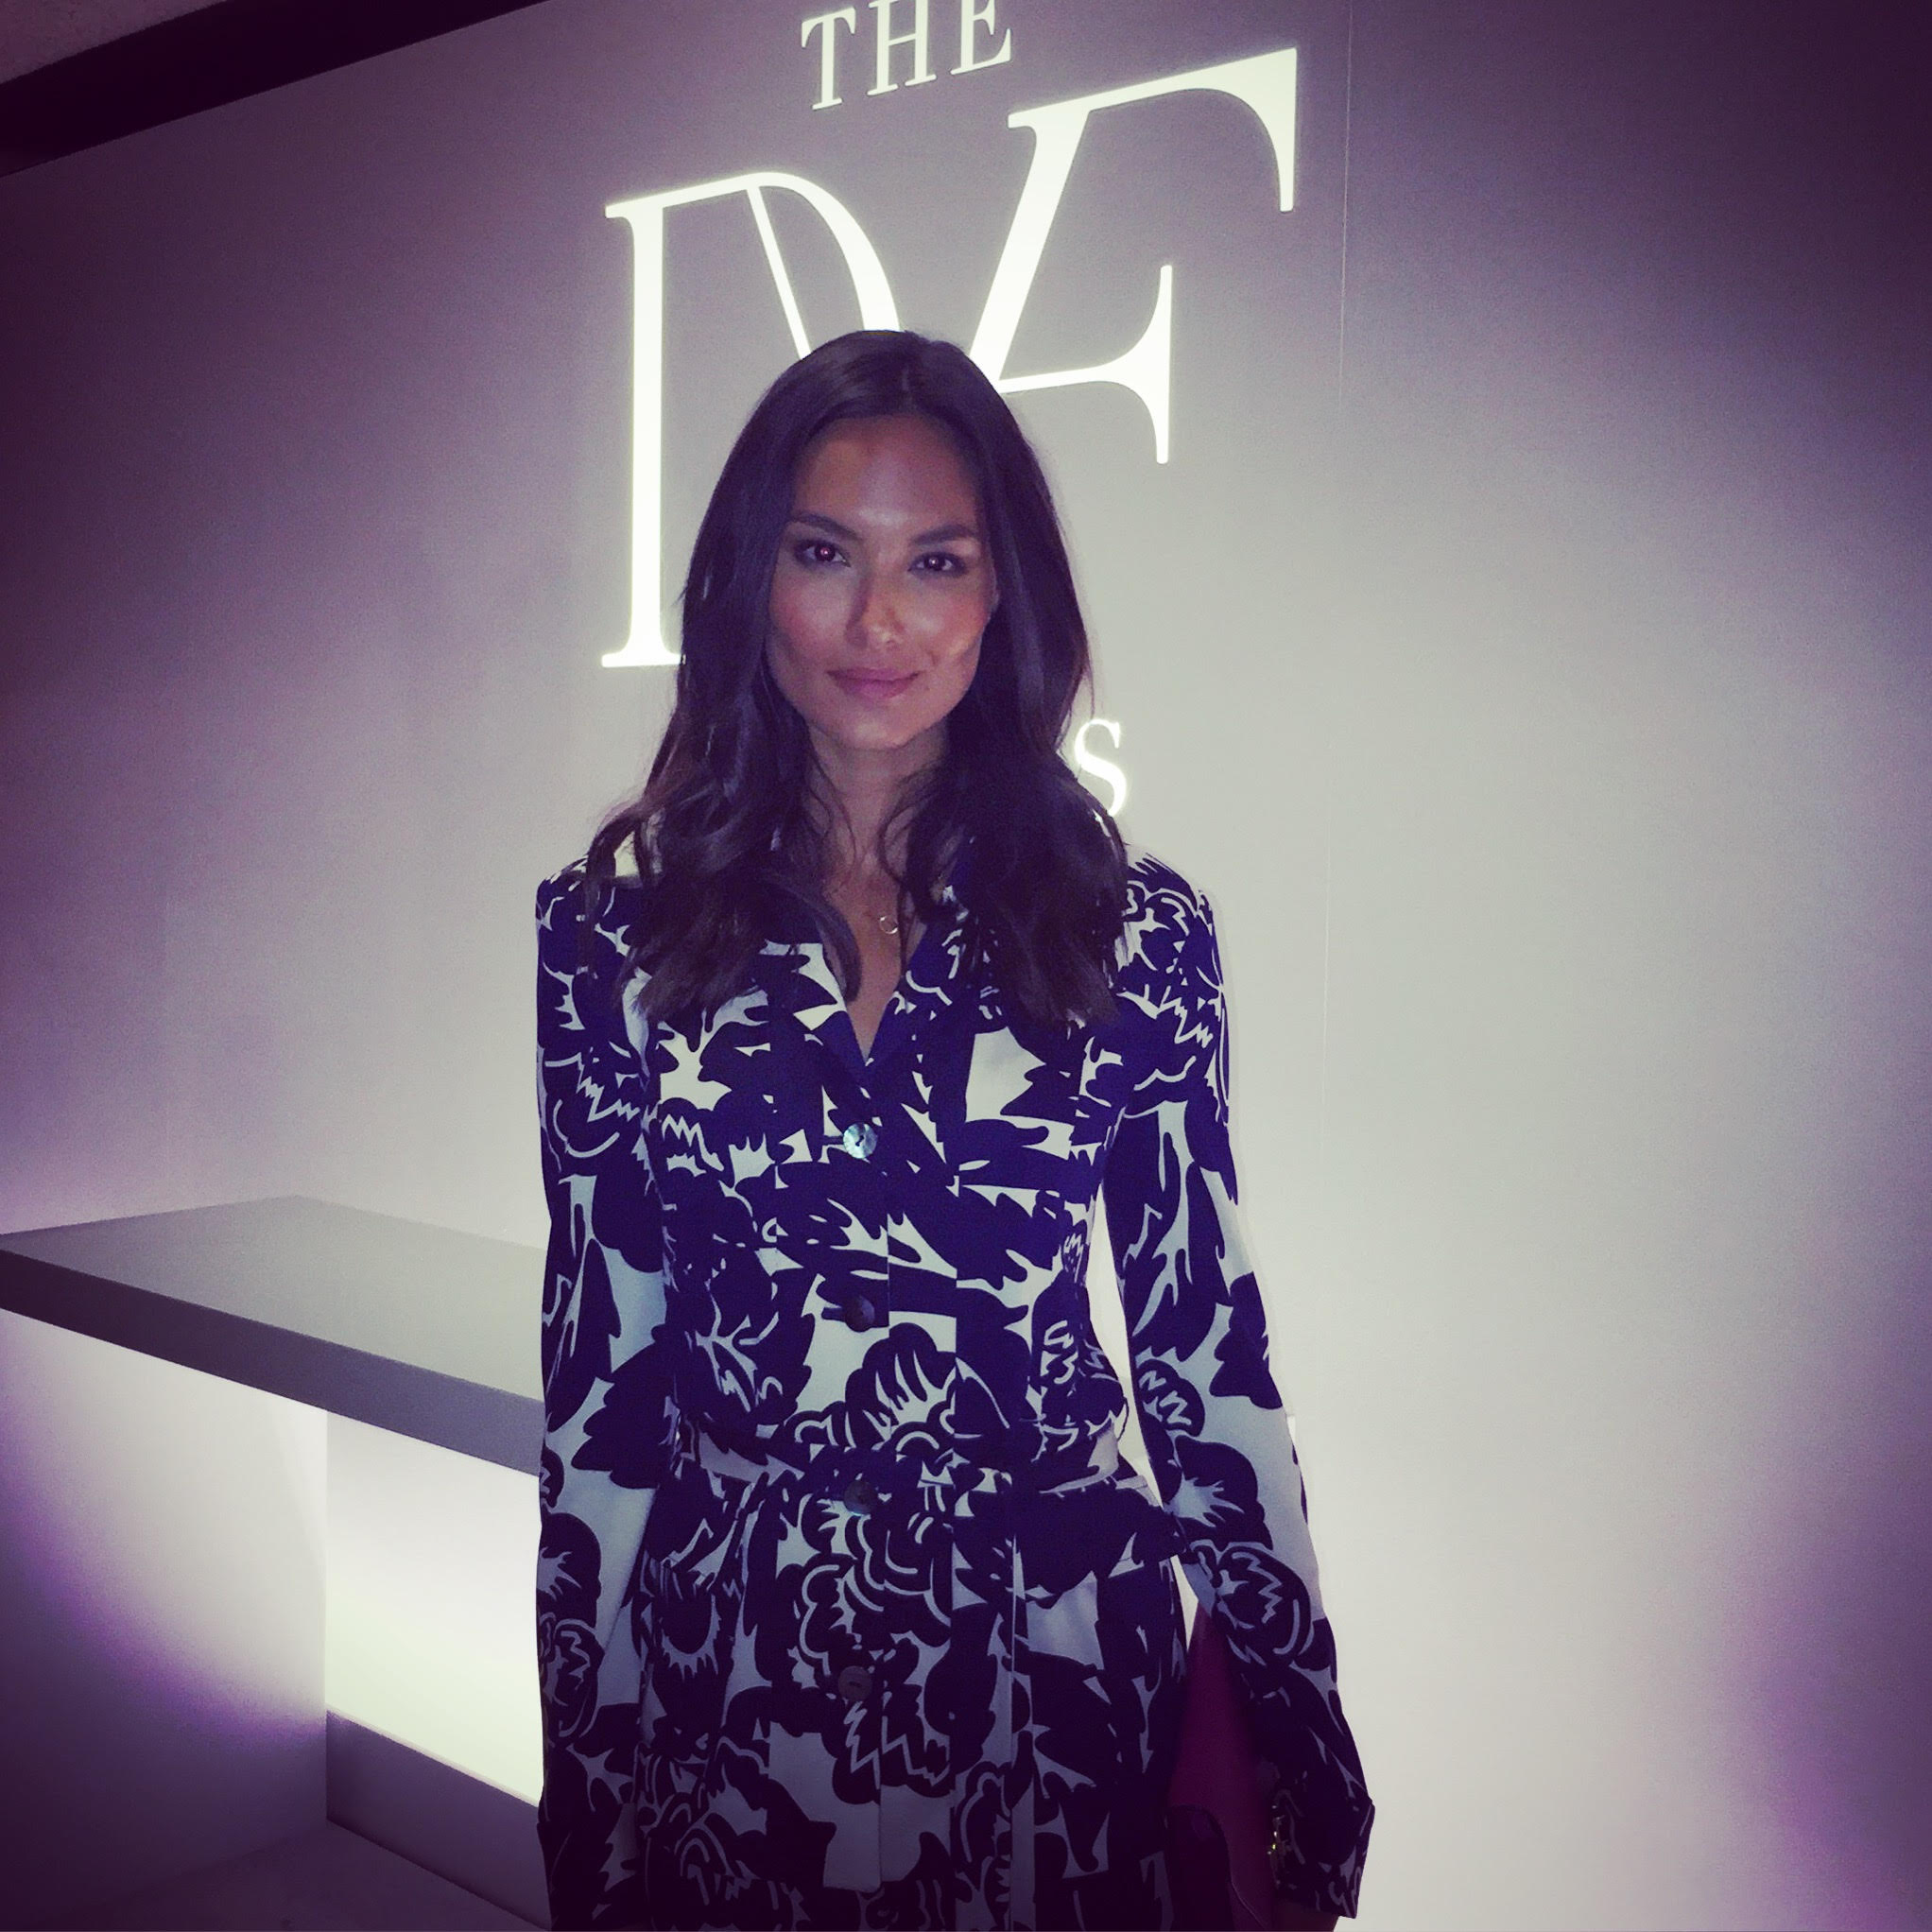 Makeup/Hair on Anne Marie Kortright